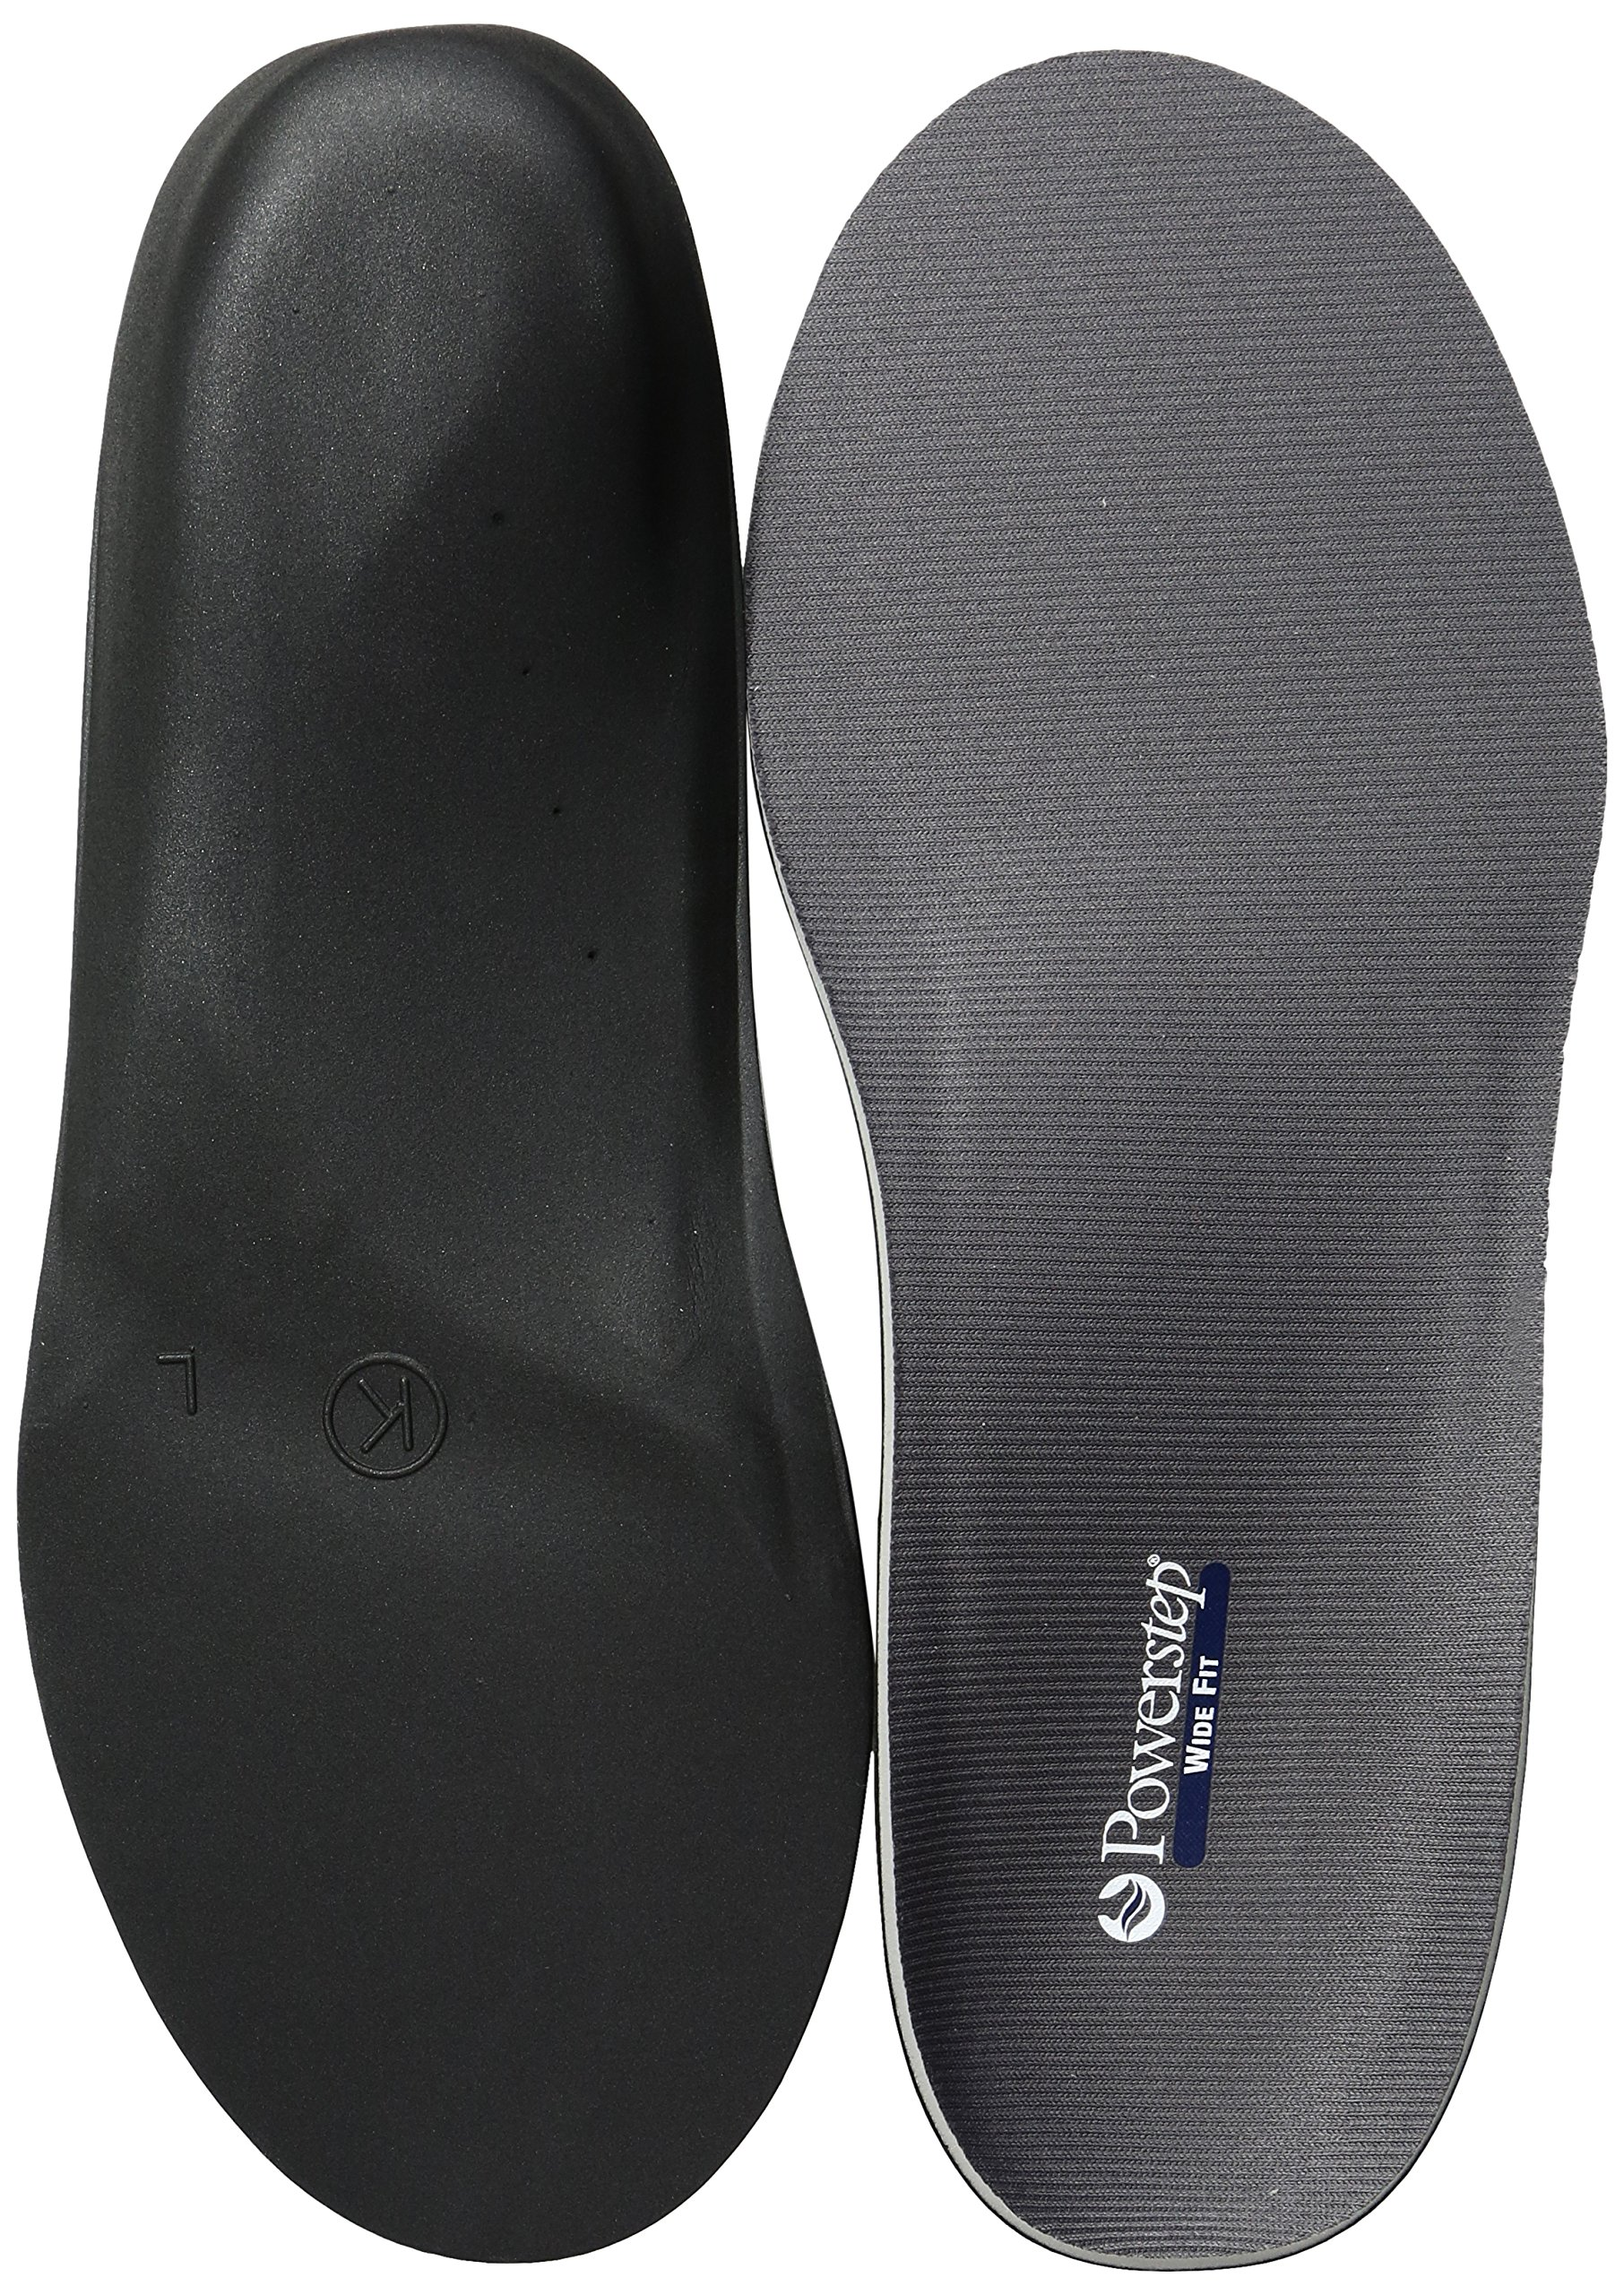 Powerstep Wide Fit Full Shoe Inserts, Gray, 12 6E US